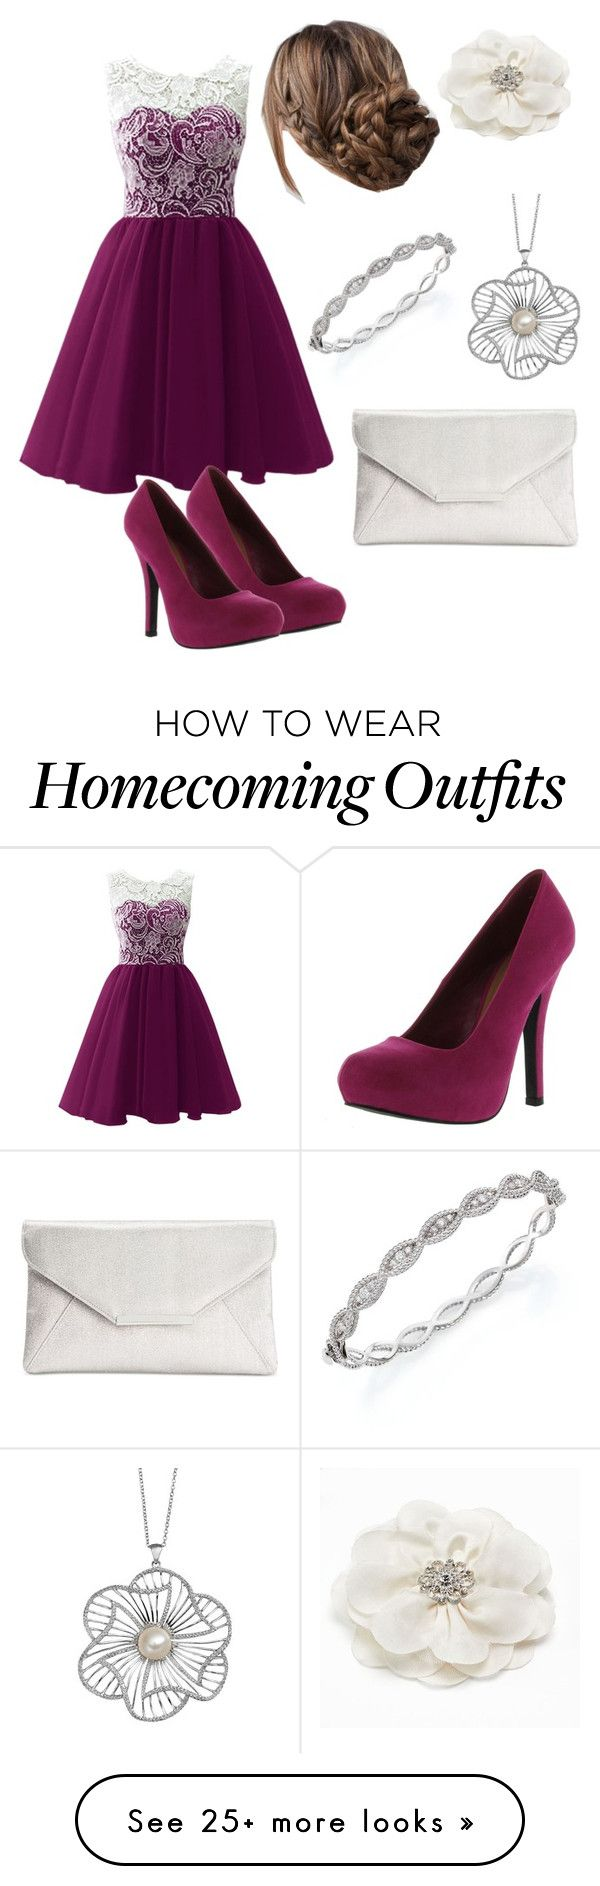 """Homecoming 5"" by flutegirlcap on Polyvore featuring Roberto Coin, Qupid and Style & Co."